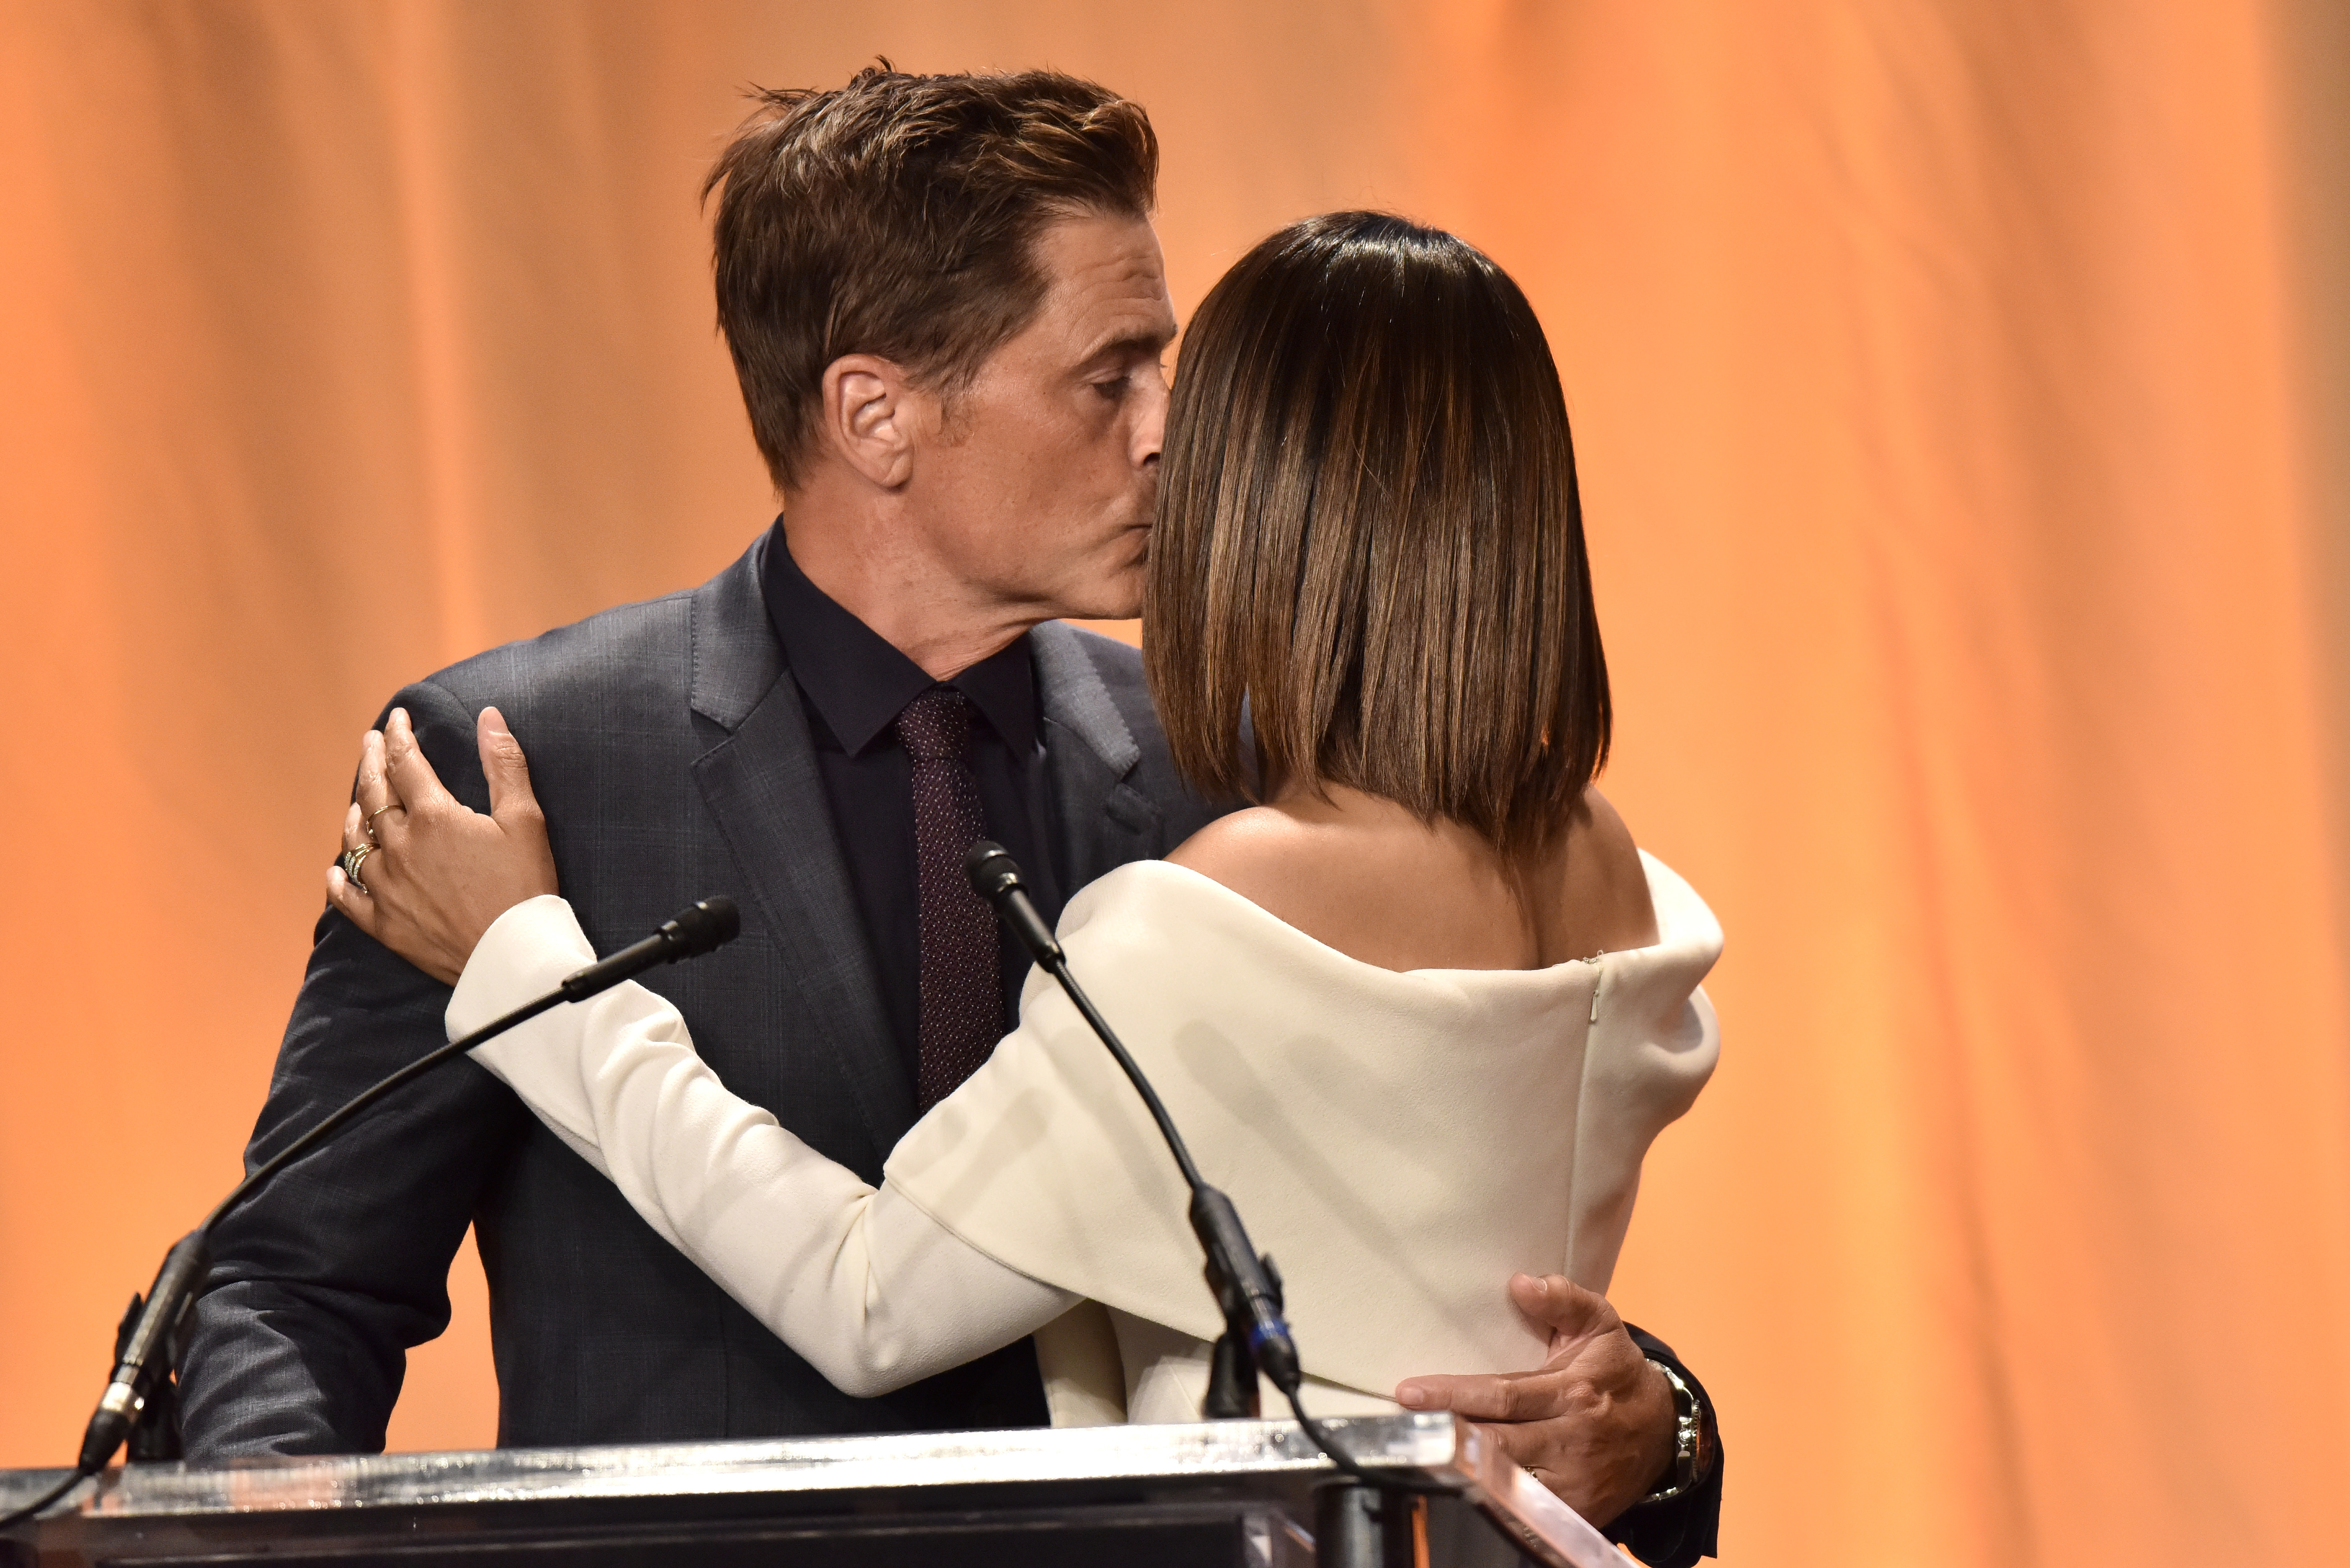 Rob Lowe and Regina Hall shared a friendly kiss while attending the Hollywood Foreign Press Association Annual Grants Banquet in Los Angeles, CA on July 31, 2019.